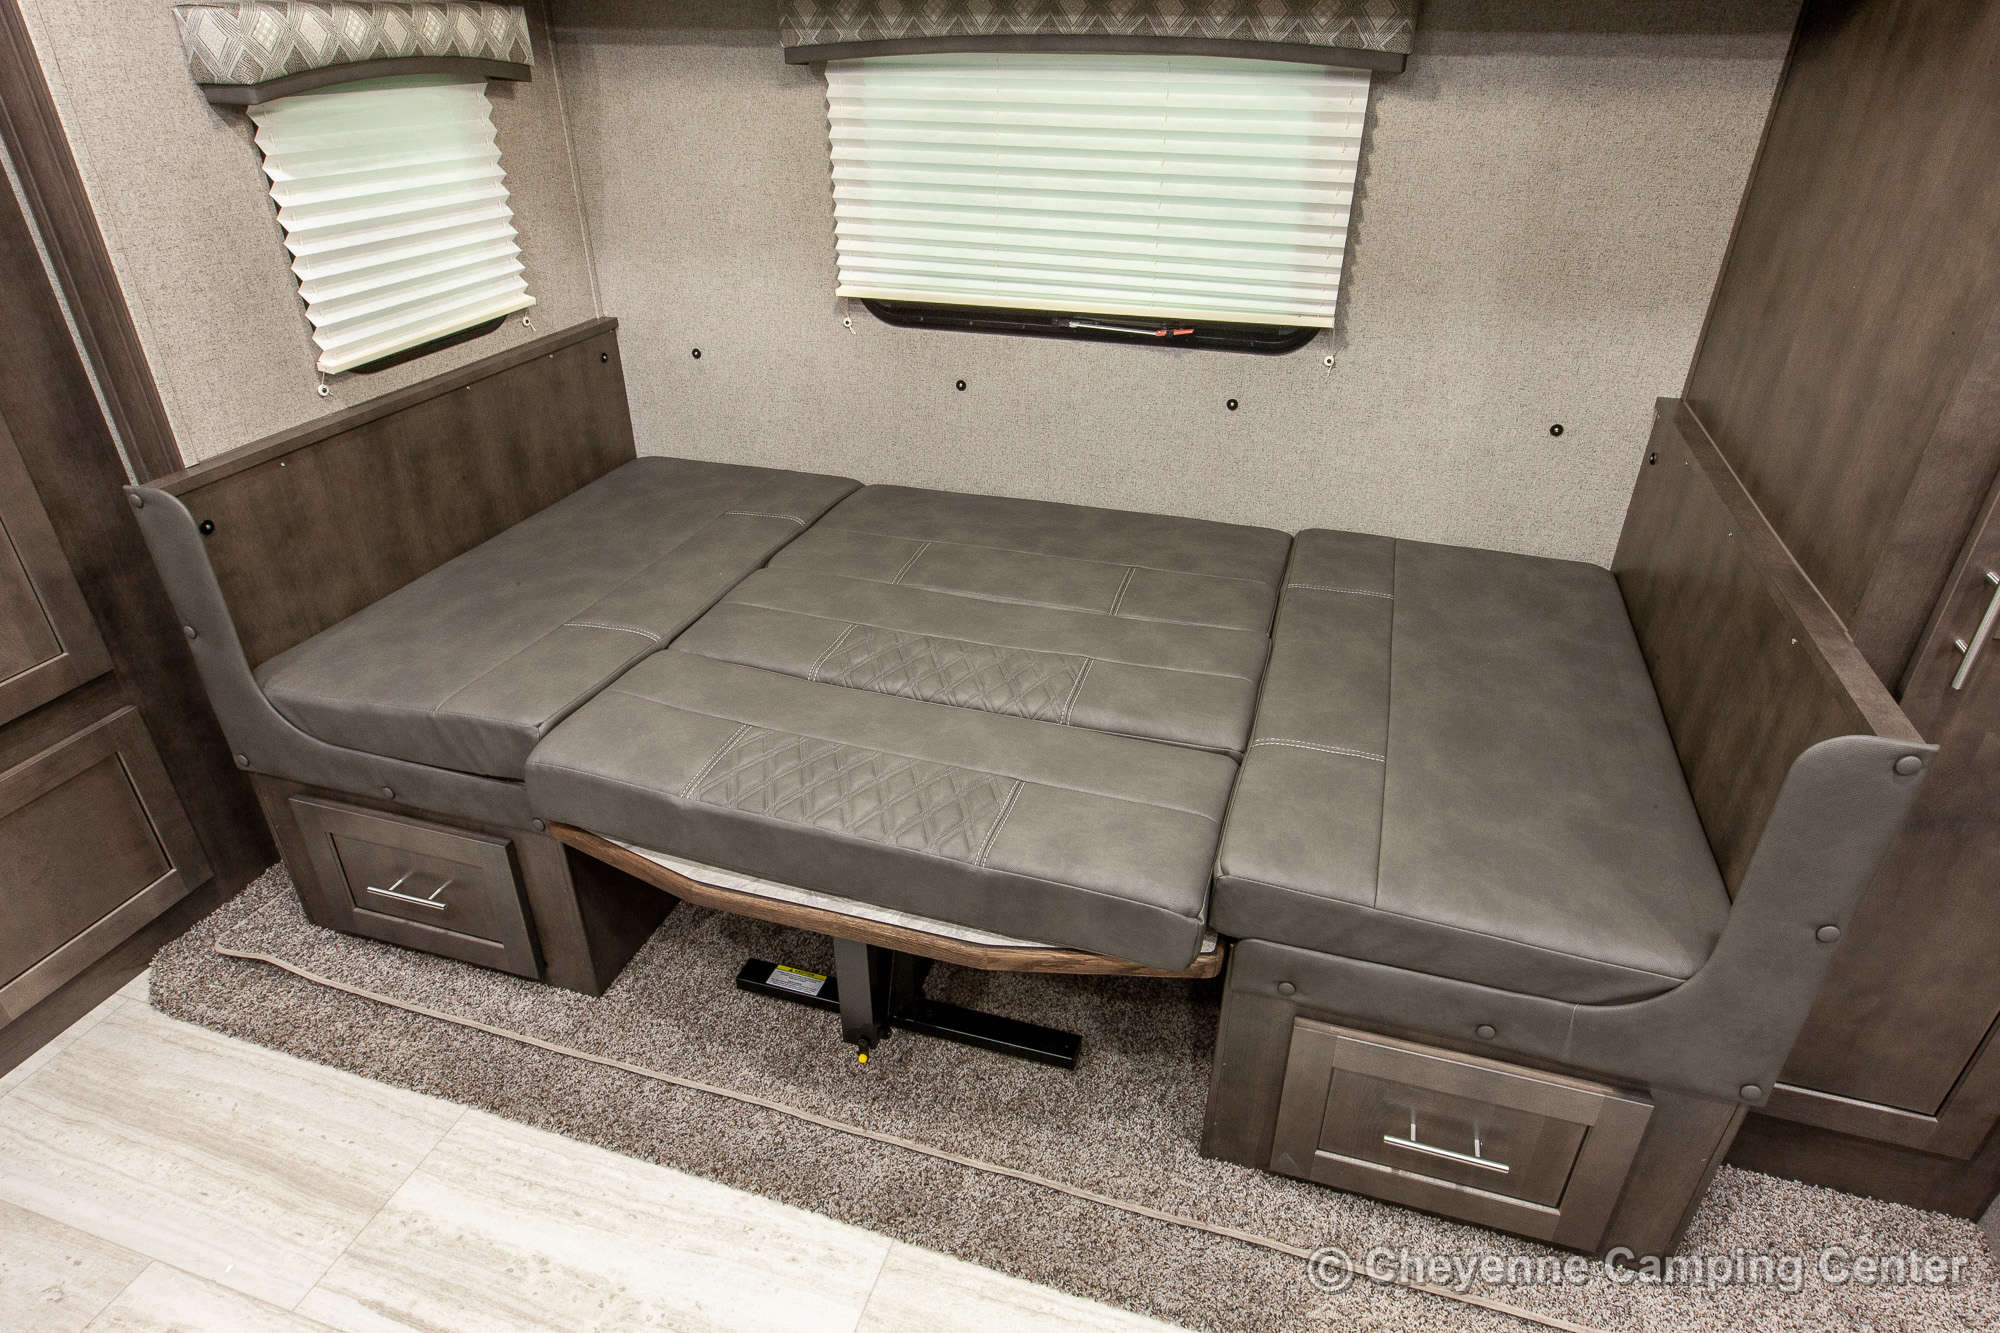 2021 Forest River Flagstaff Micro Lite 25BRDS Bunkhouse Travel Trailer Interior Image